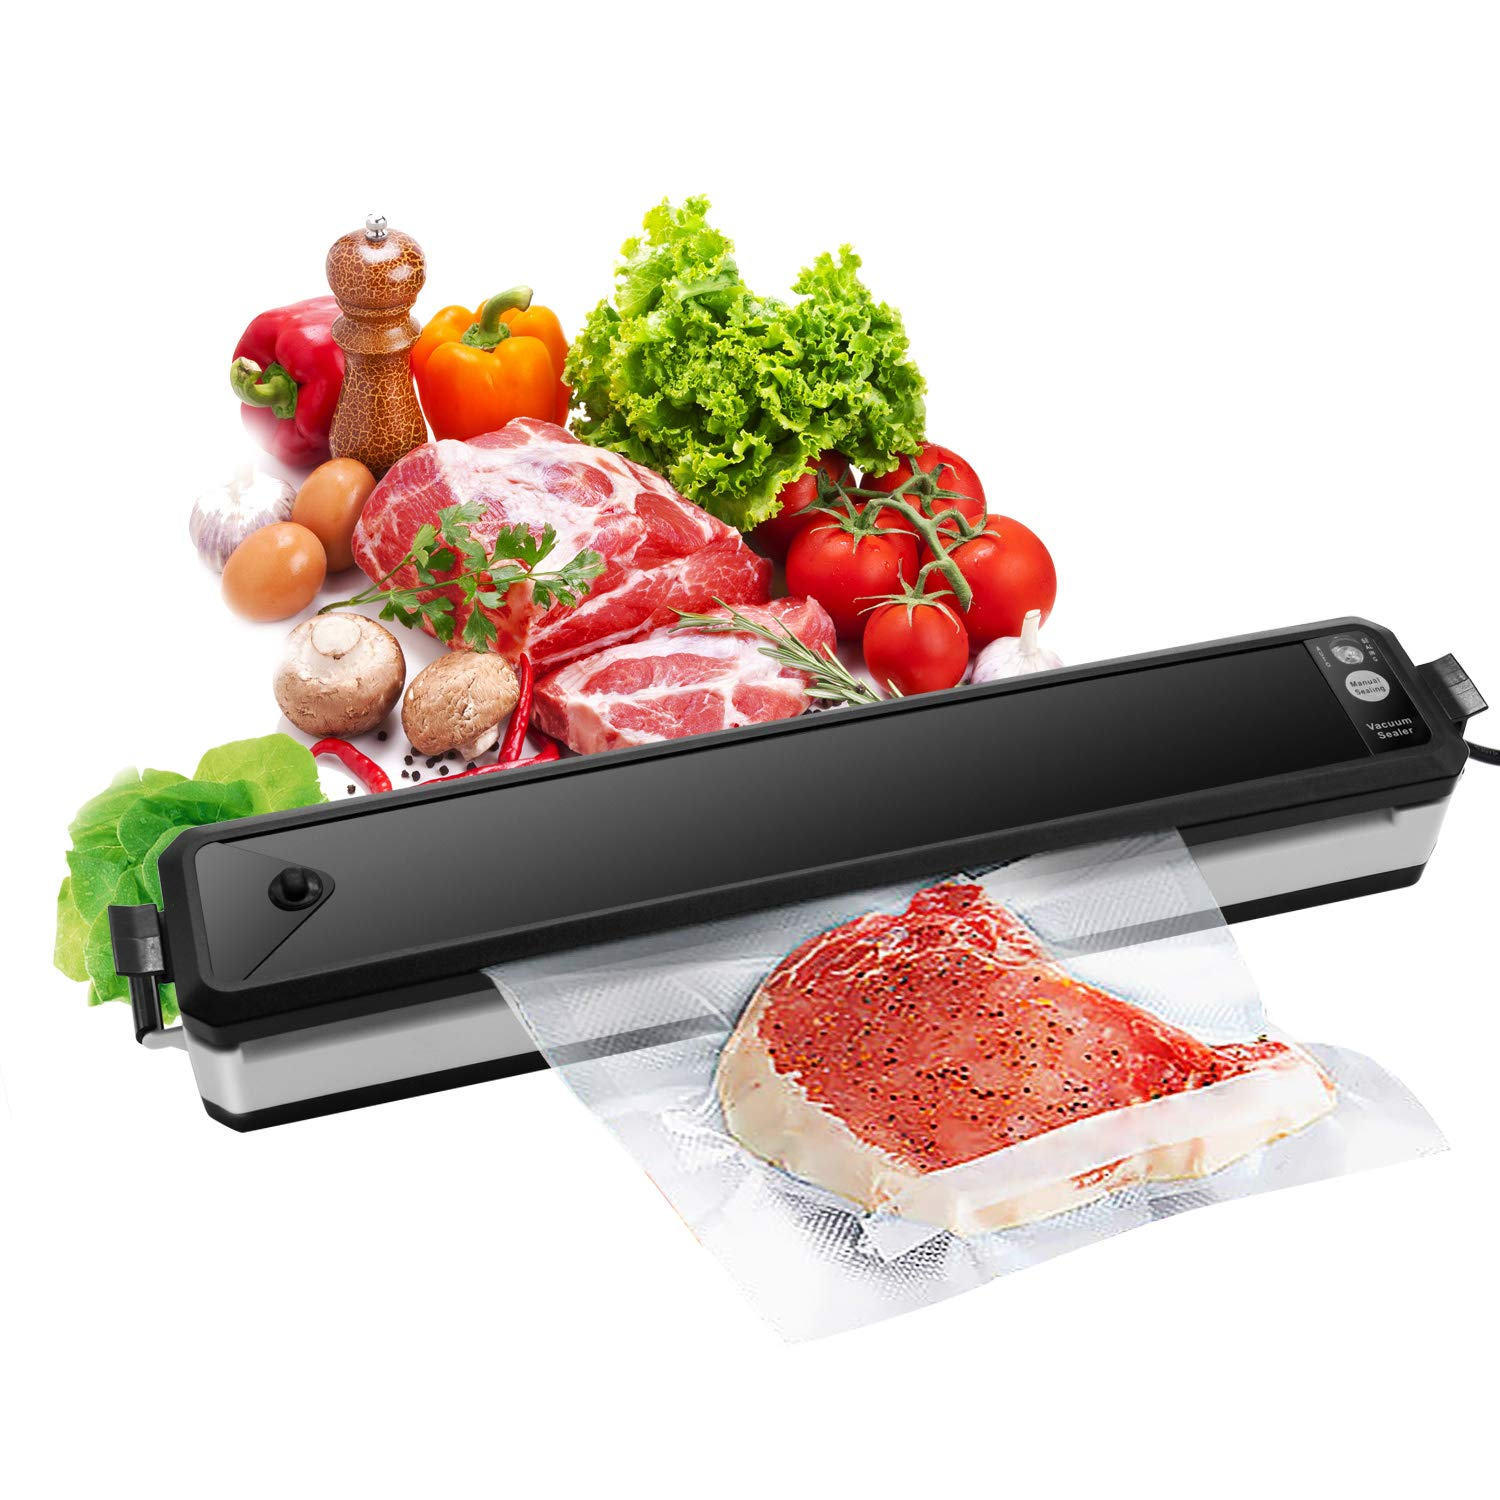 Vacuum Sealer, Sunvito Electric Automatic Food Sealer Machine with Premium Seal Bags for Meat, Eggs, Vegetables, Fruit Storage, Black